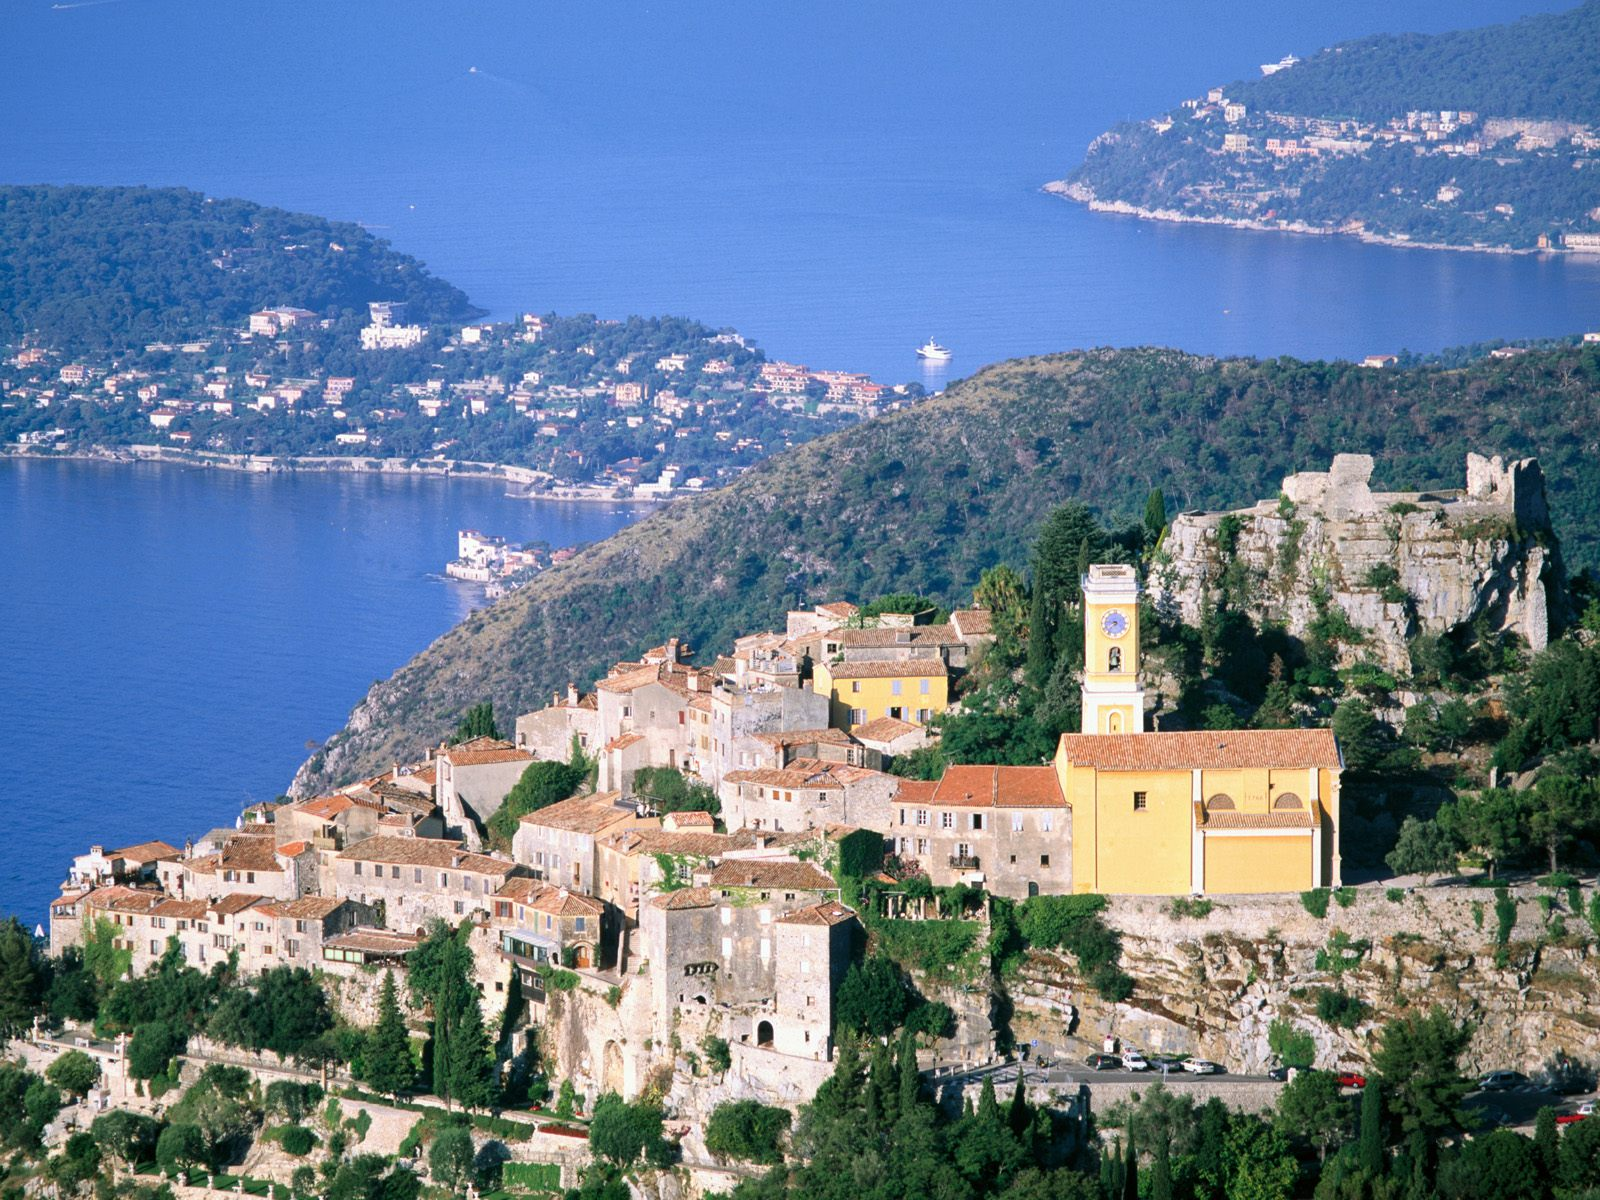 Eze and Cap-Ferrat France picture, Eze and Cap-Ferrat France photo ...: www.citypictures.org/r-europe-148-france-218-eze-and-cap-ferrat...